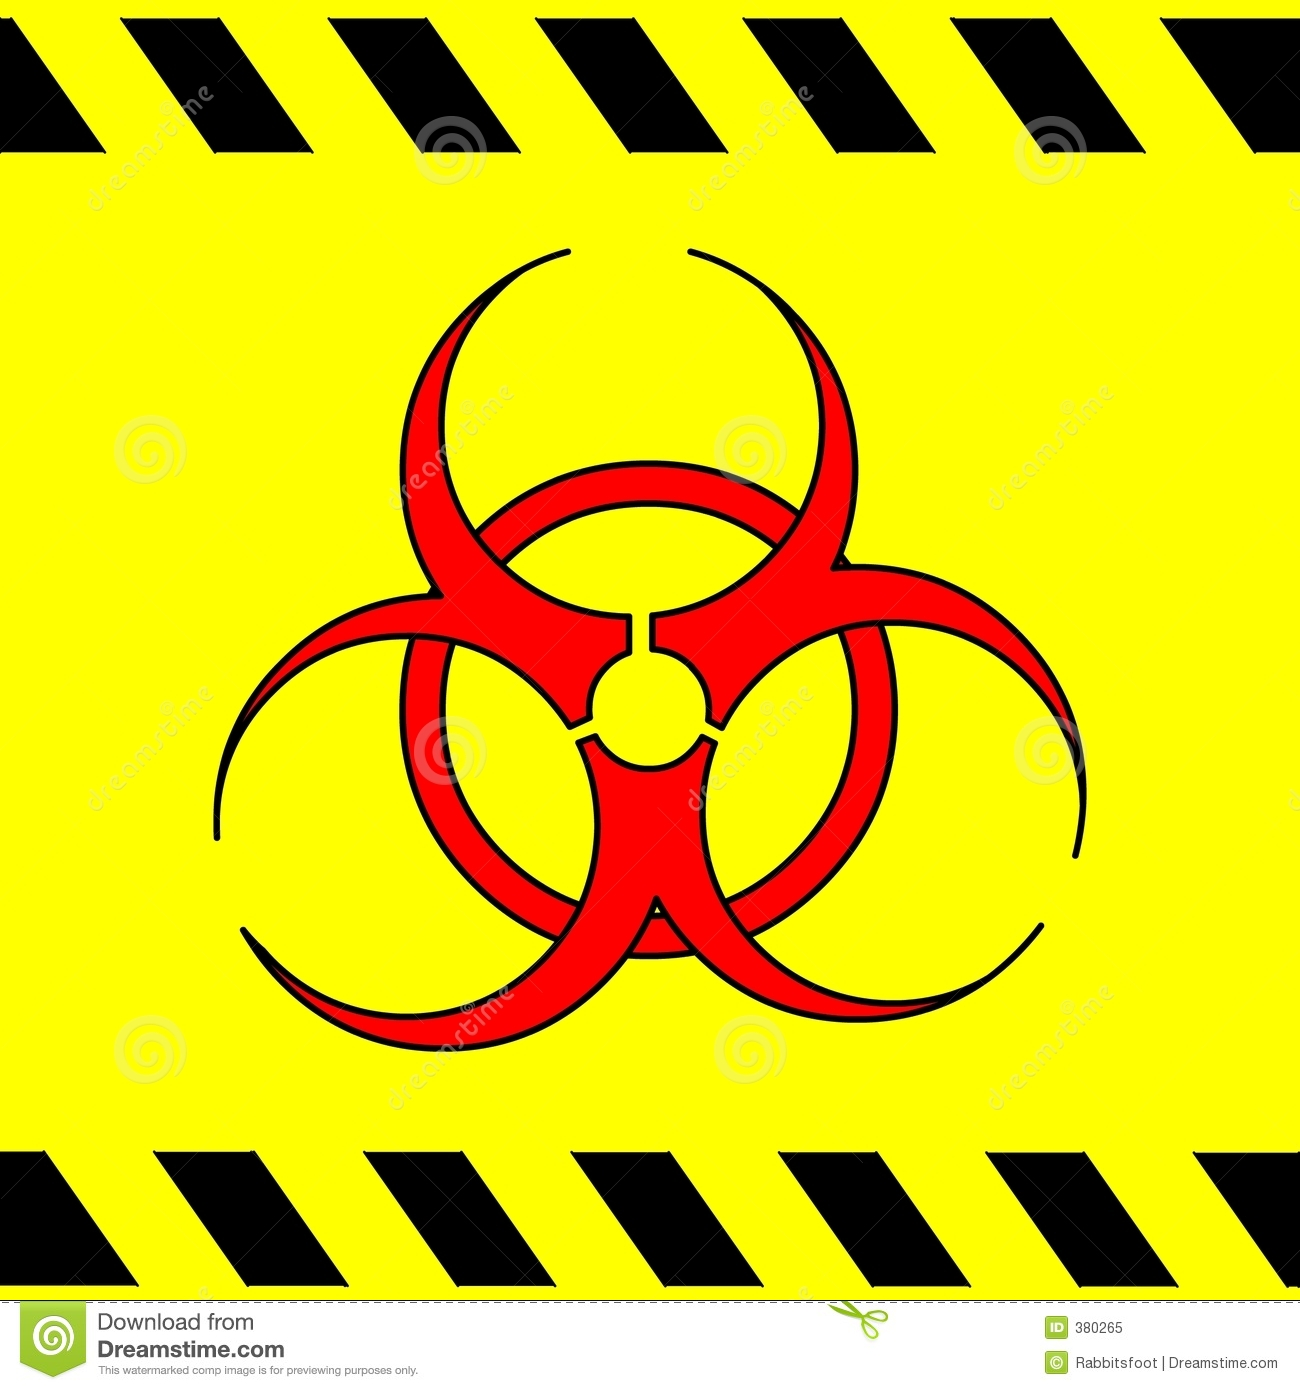 Biohazard sticker stock illustration illustration of medical 380265 biohazard sticker biocorpaavc Image collections